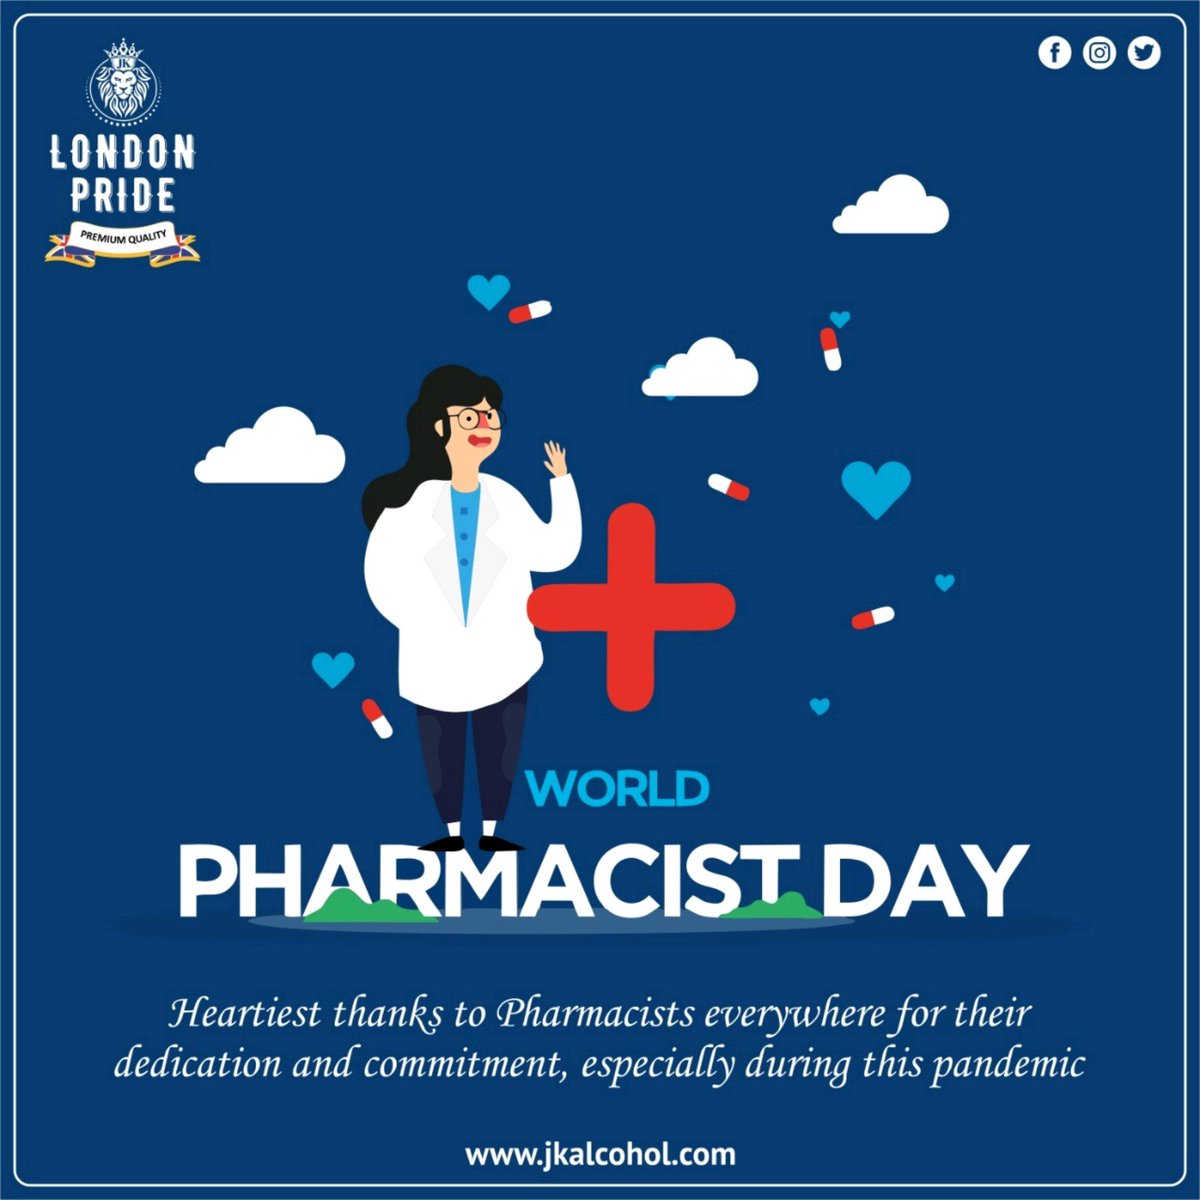 On this World Pharmacist Day, we thank all our courageous pharmacists for helping the communities stay strong and safe. #WorldPharmacistsDay #Pharmacists #Pharmacy #Medicine #GlobalHealth #Health #PatientsHealth #COVID19 #jkalcohol #Jkgroup #JkEnterprises #londonpride https://t.co/7UvUjQ6Rsa